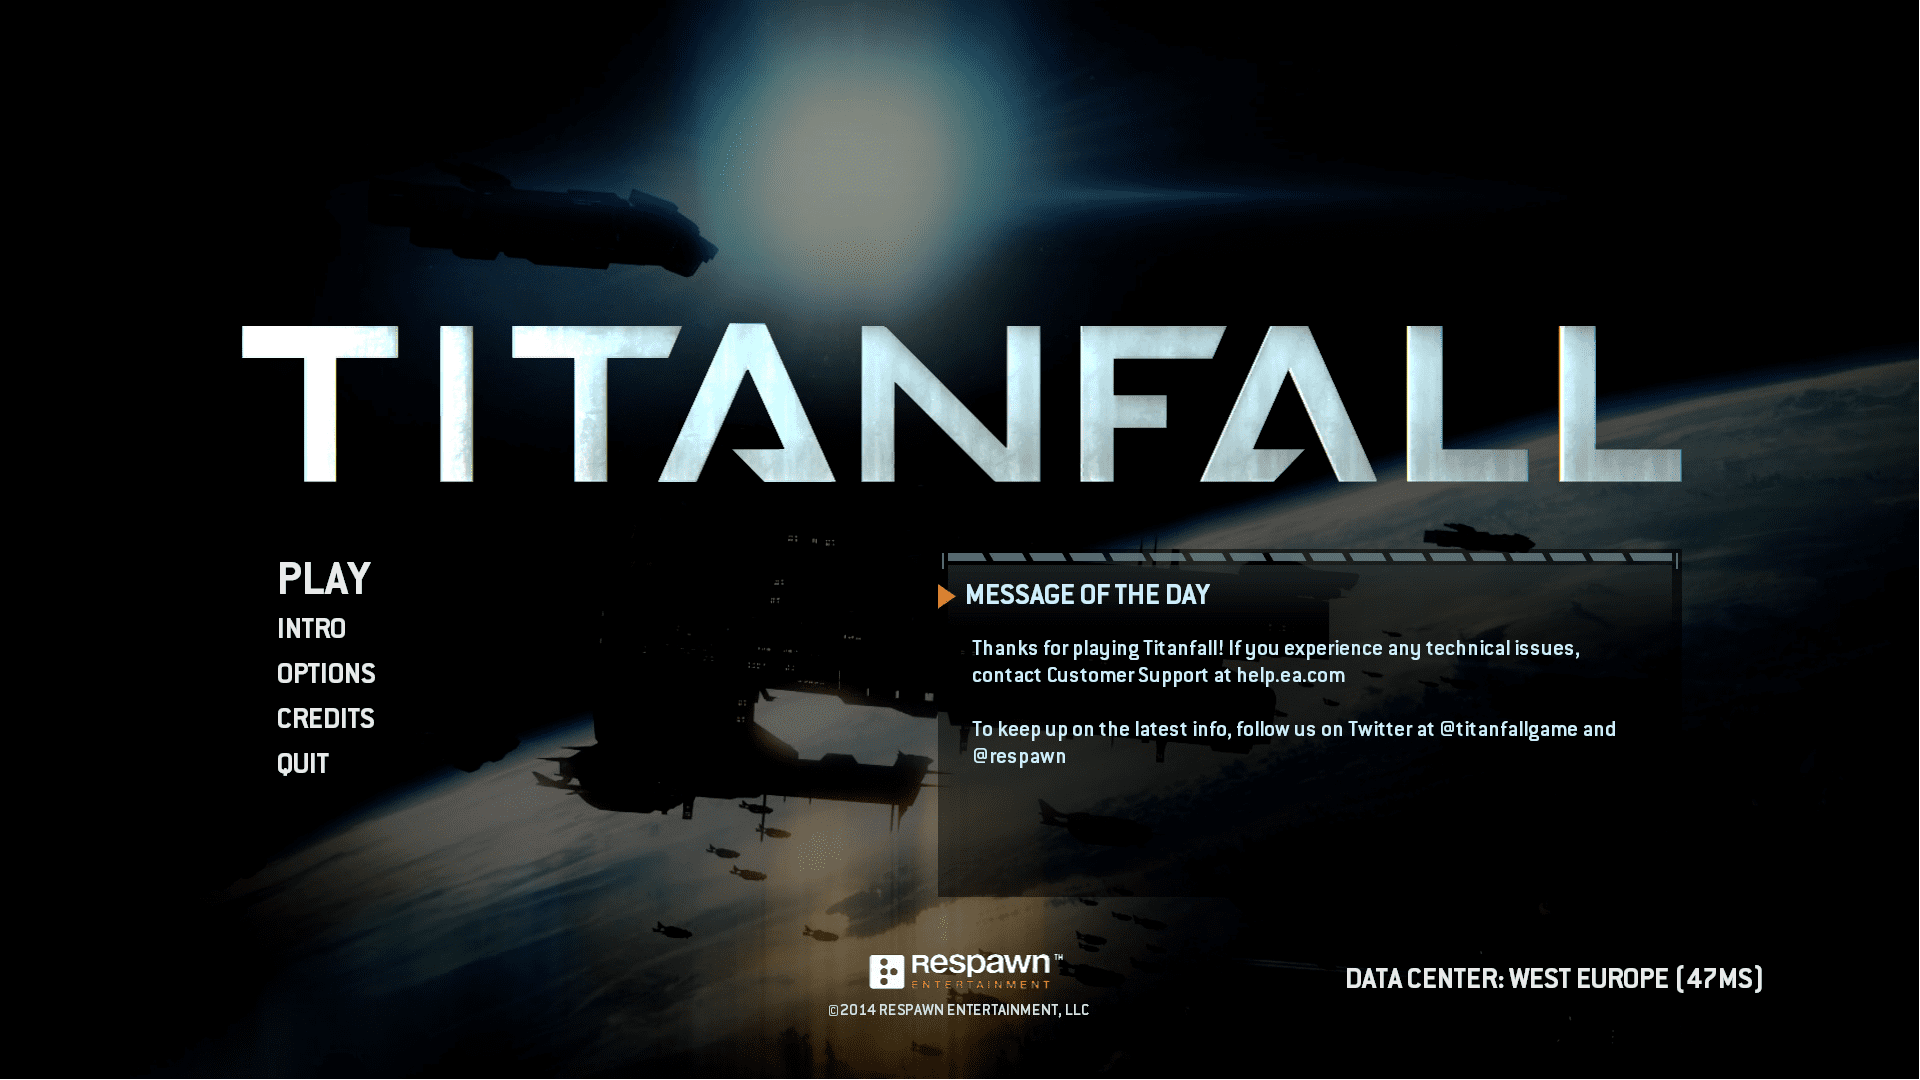 titanfall campaign matchmaking Postcards from the frontier on titanfall 2 that we wanted to do a single player campaign on the new matchmaking system for titanfall 2.